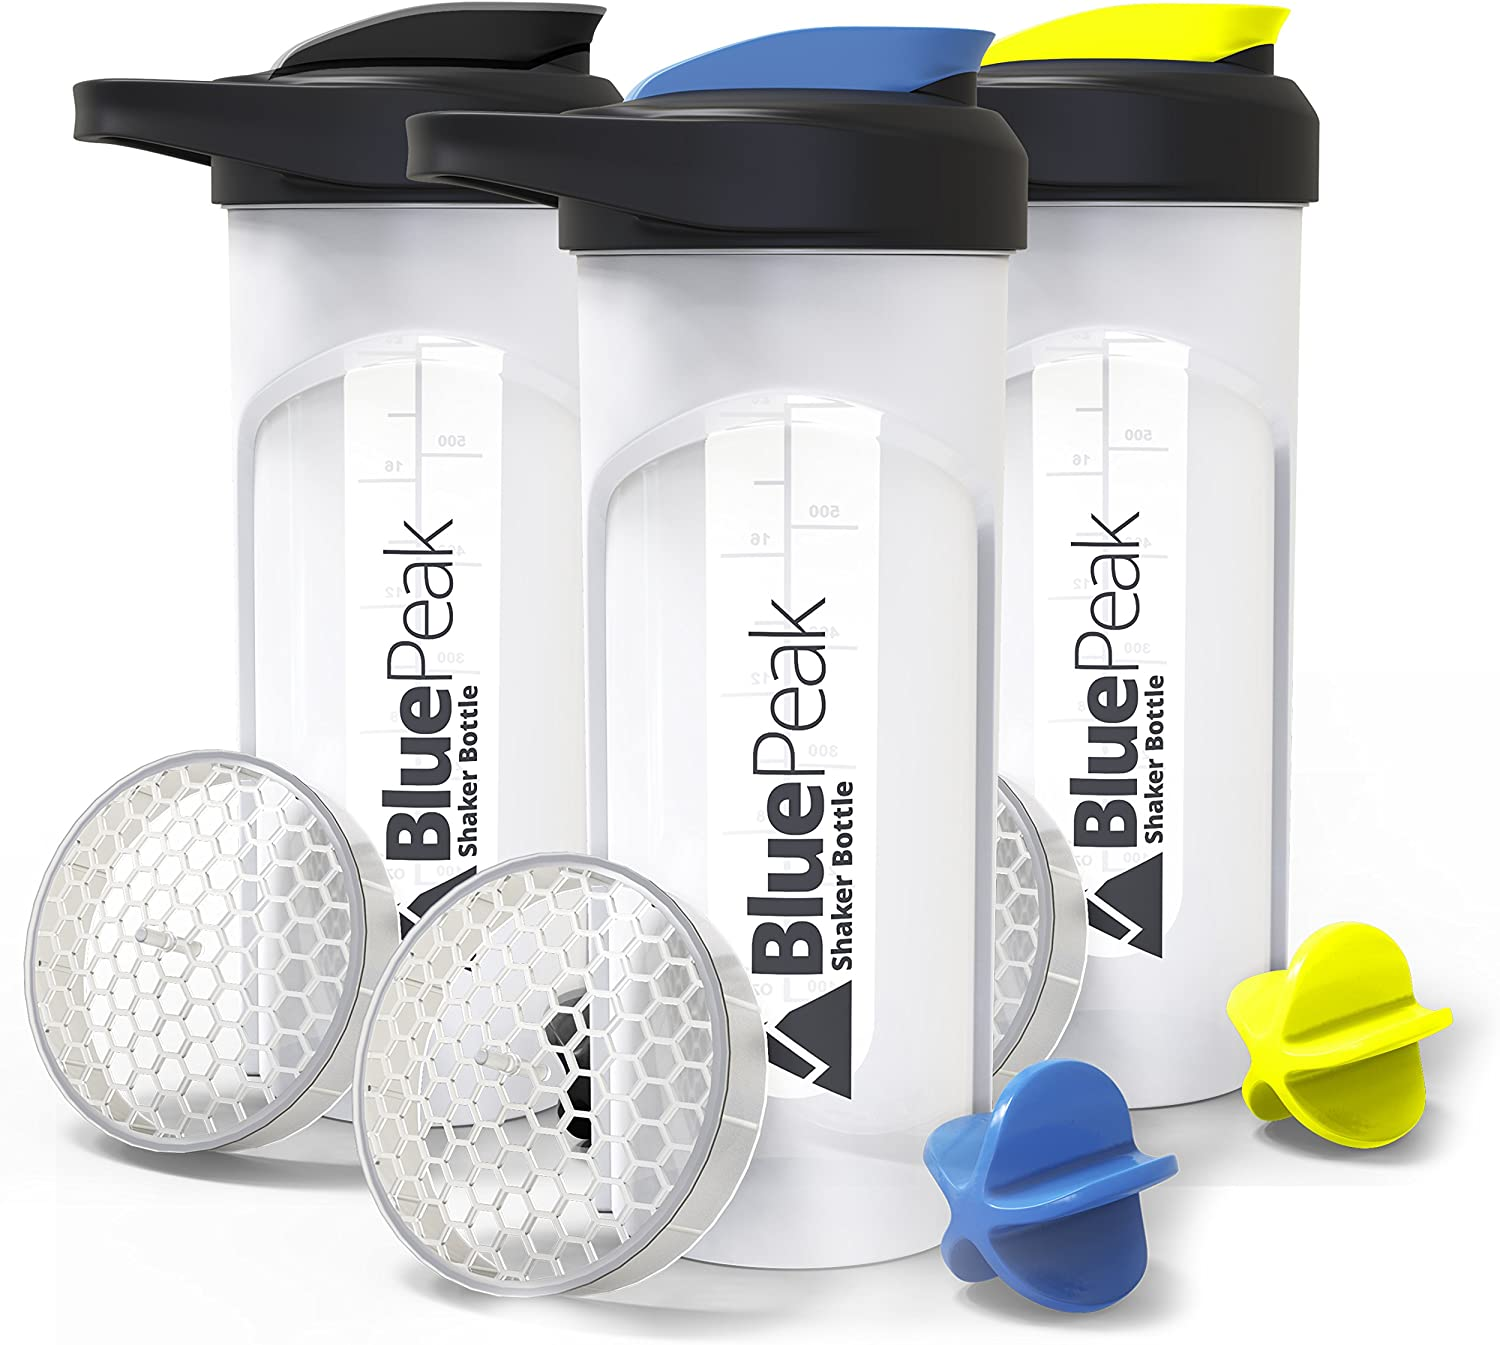 BluePeak Protein Shaker Bottle 28-Ounce, 3-Pack, with Dual Mixing Technology. BPA Free, Shaker Balls & Mixing Grids Included (Yellow, Blue & Black)